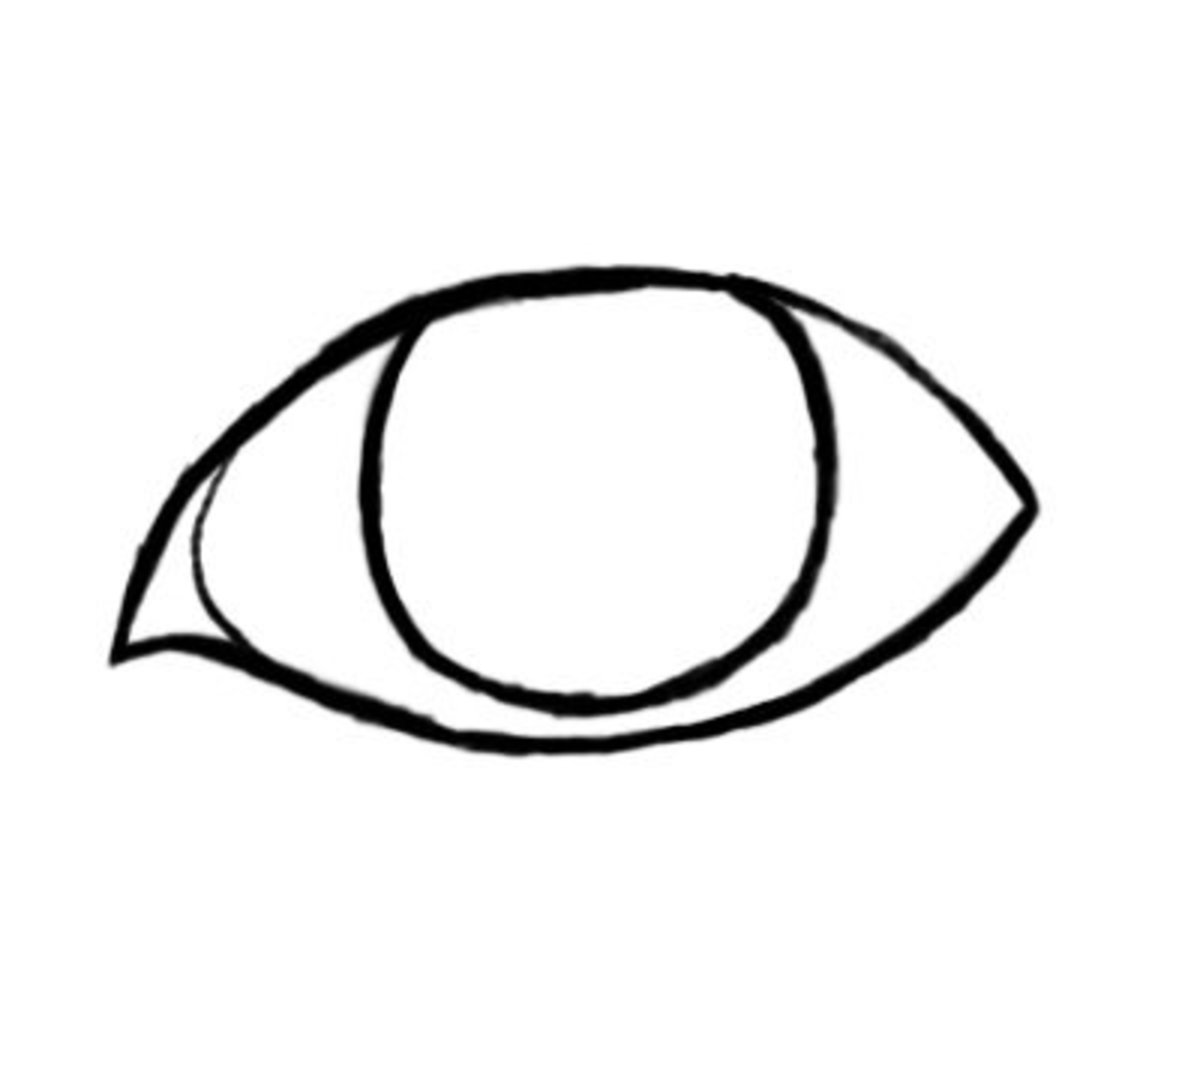 Draw the center and corner of the eye similar to the way it looks here.